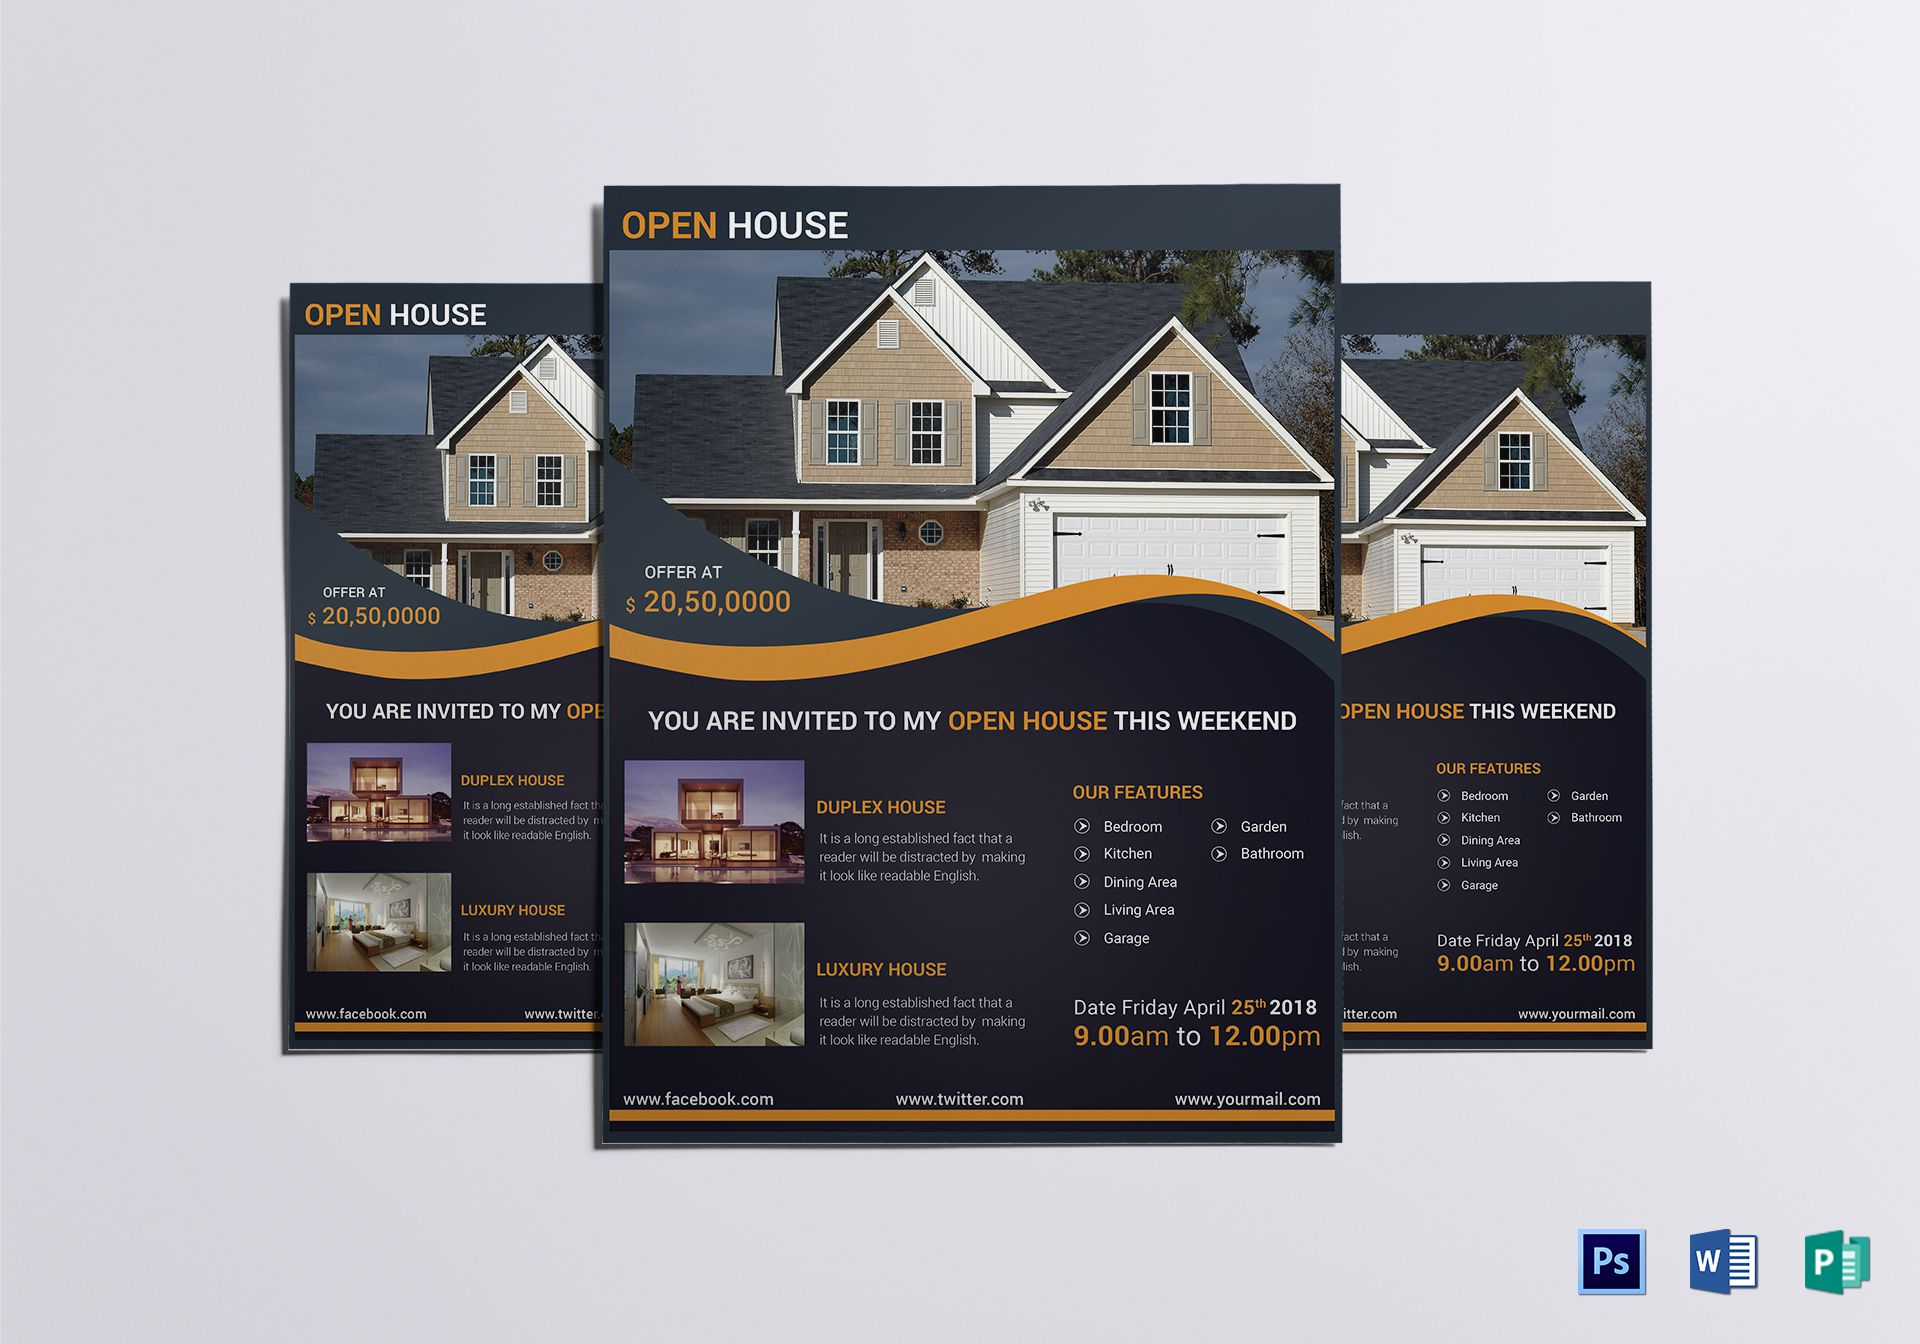 007 Simple Open House Flyer Template High Def  Templates Word Free School MicrosoftFull